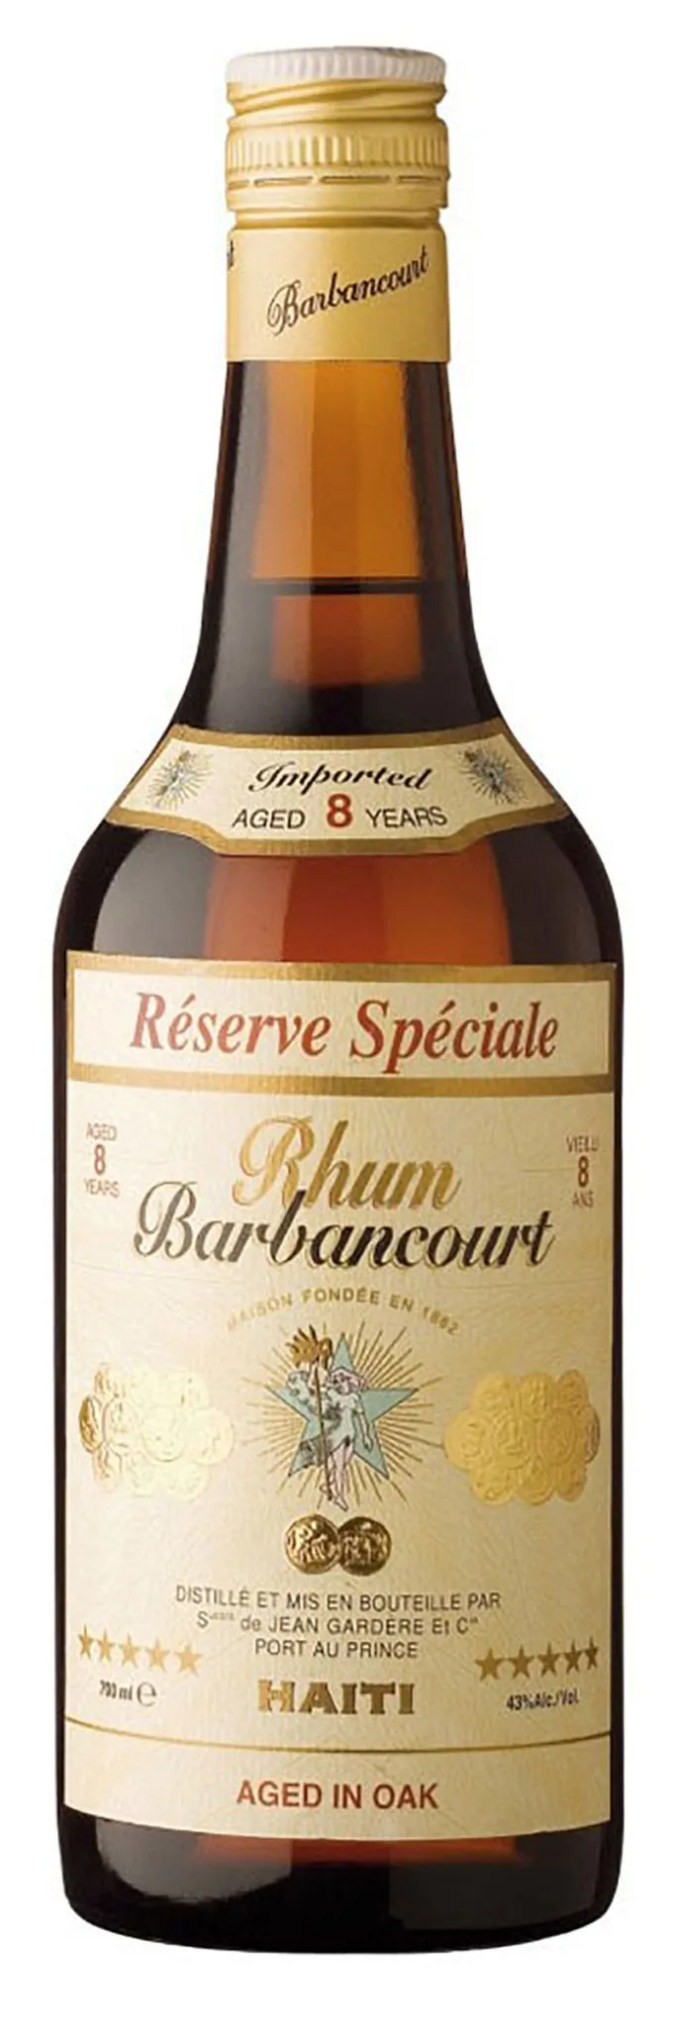 Barbancourt Five Star Reserve Especiale Image